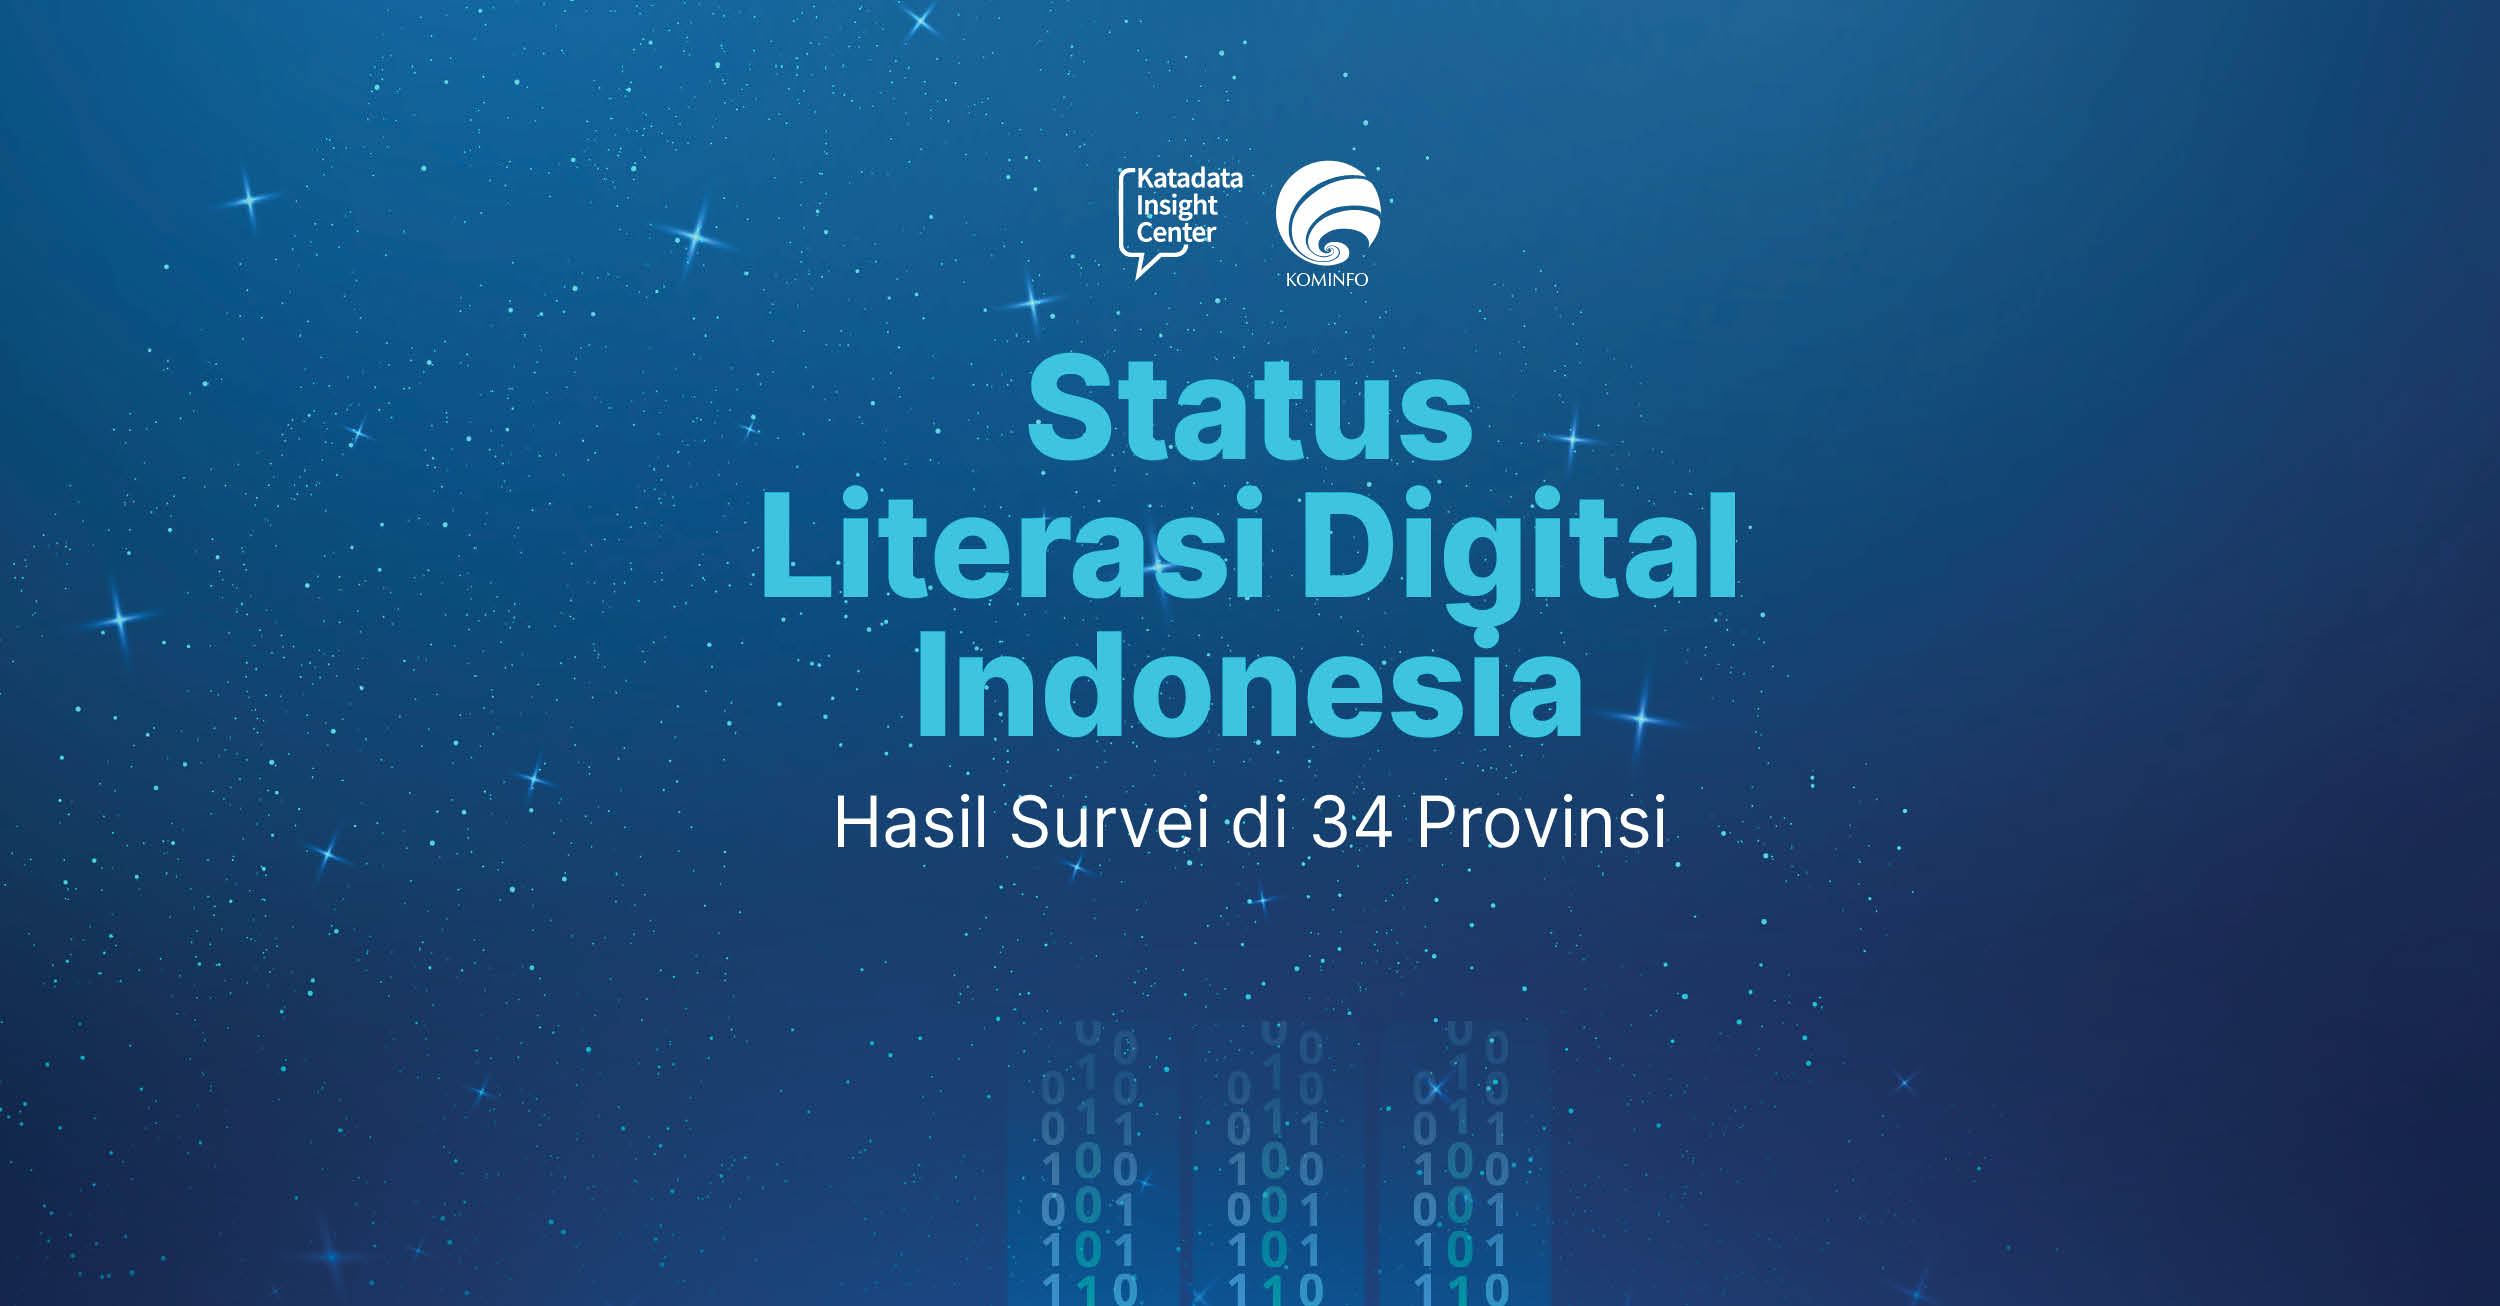 Status Literasi Digital Indonesia